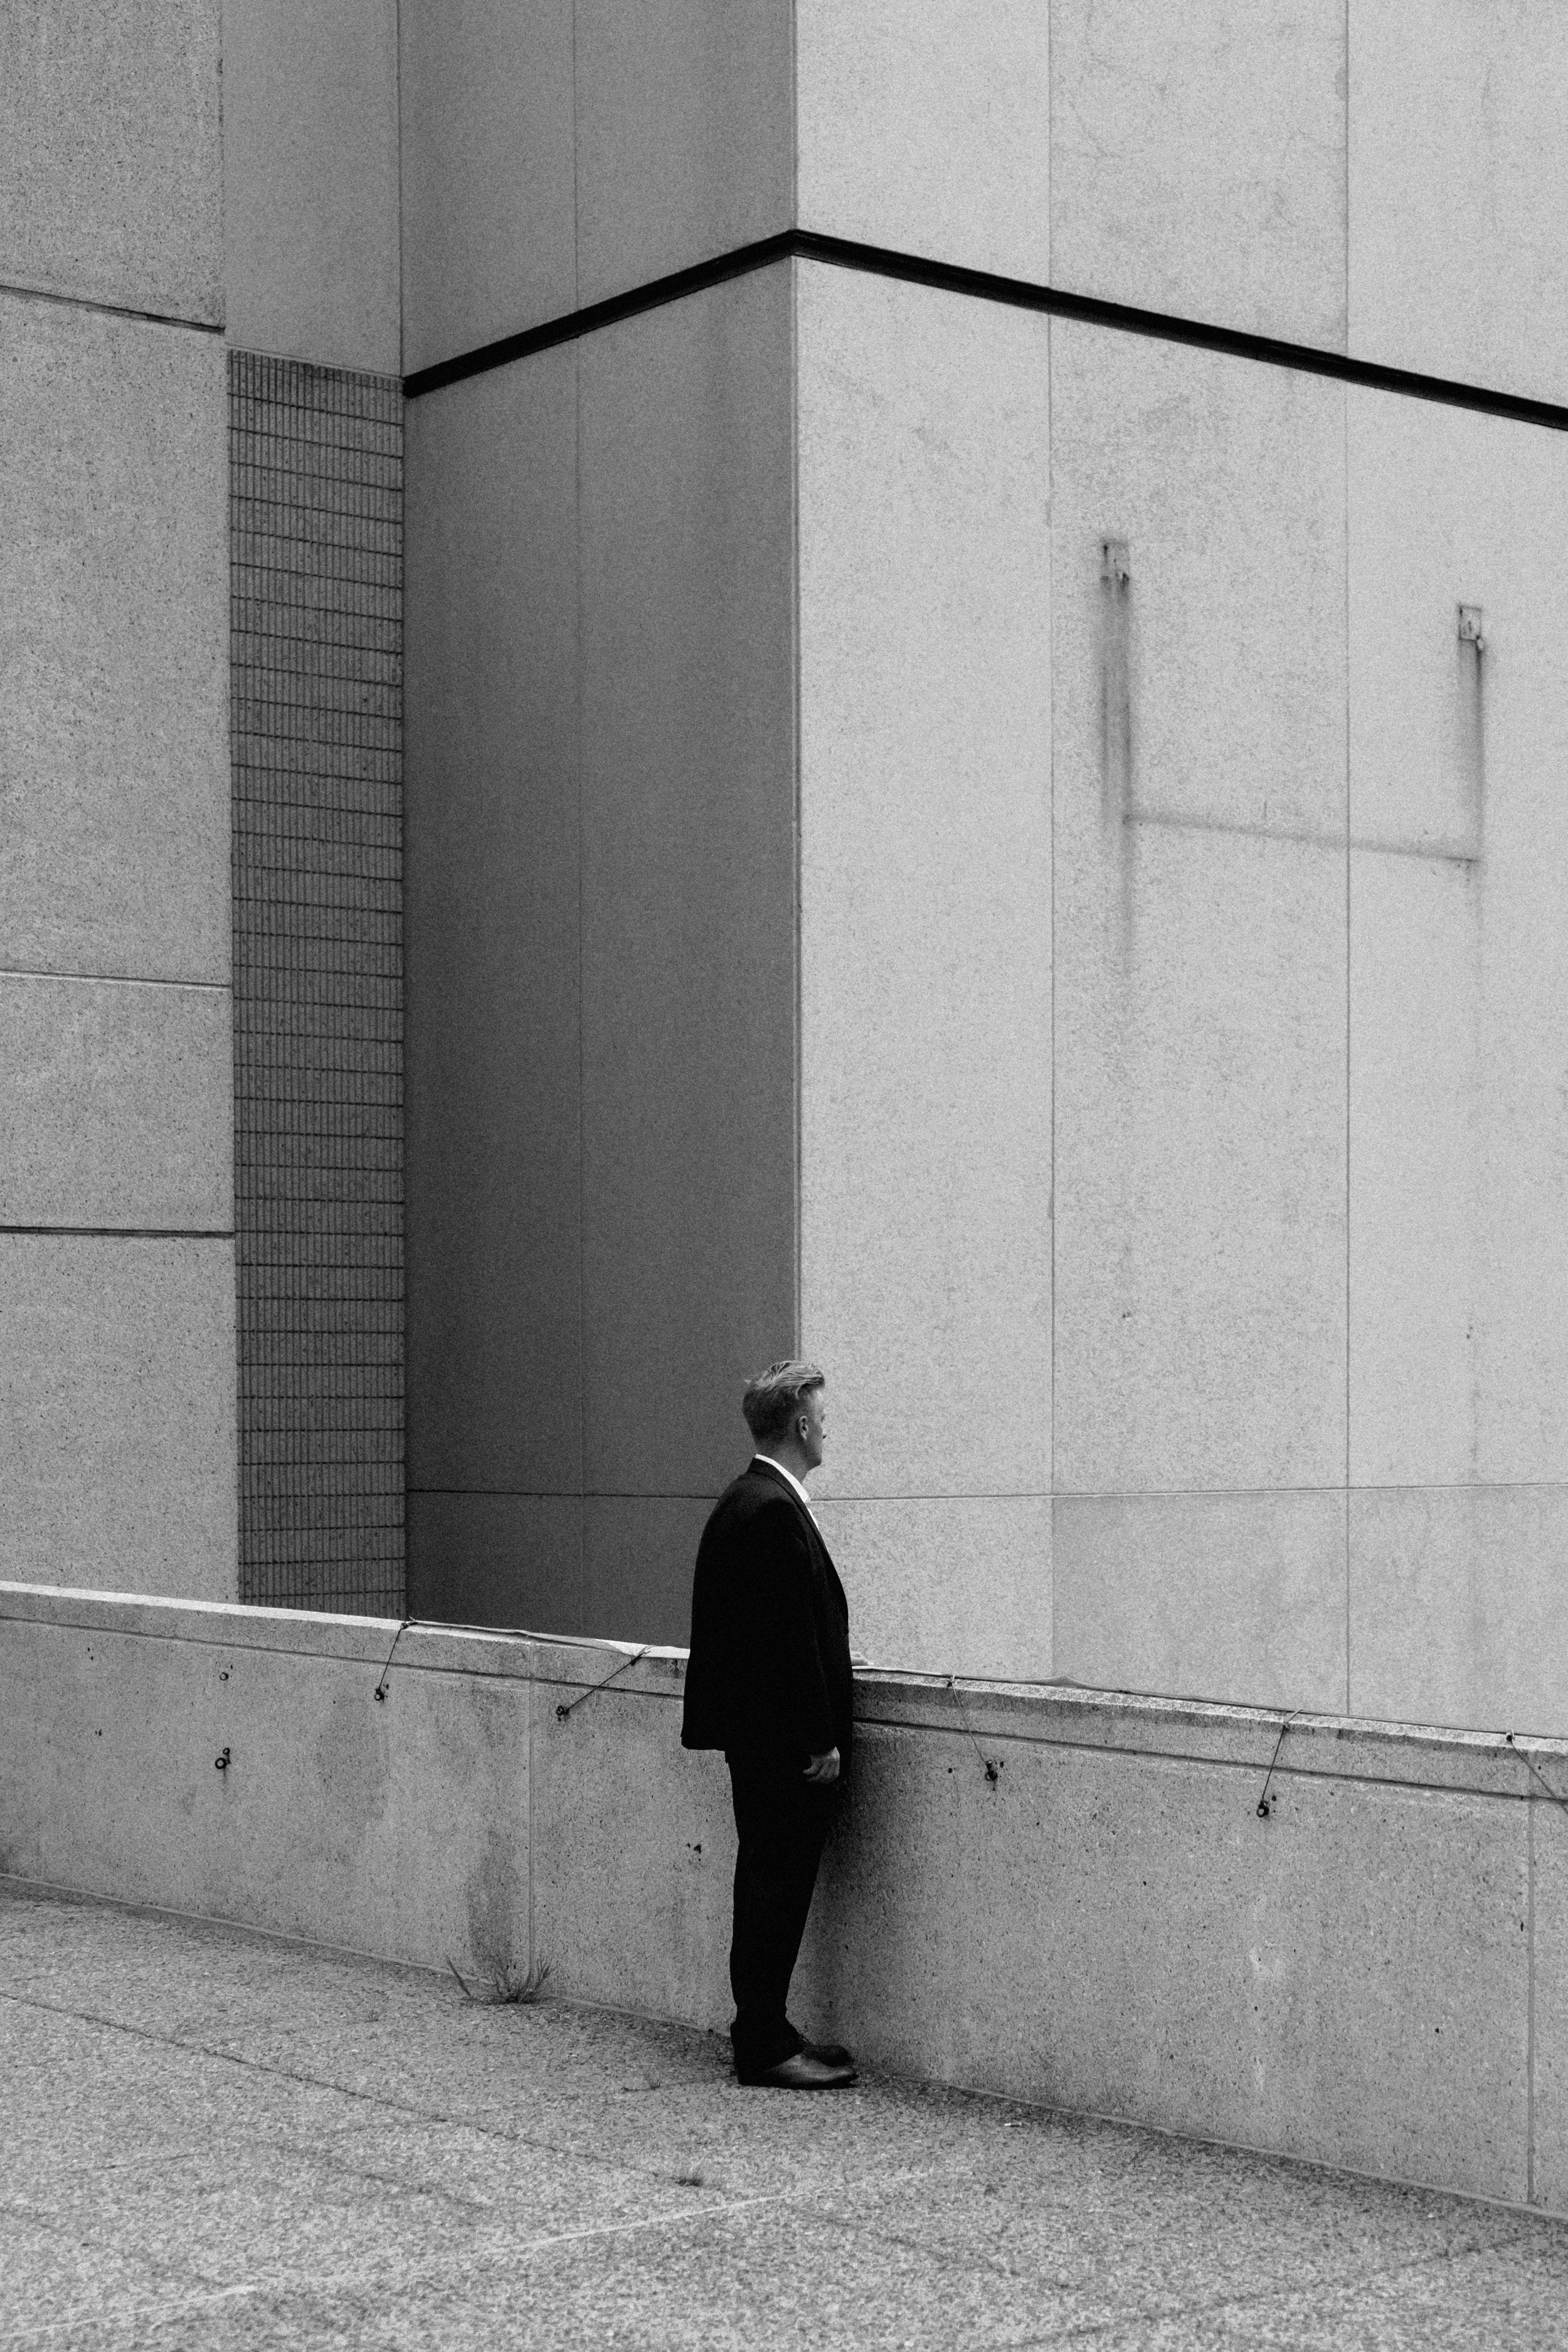 A black-and-white shot of a man in a black suit standing near a building ledge